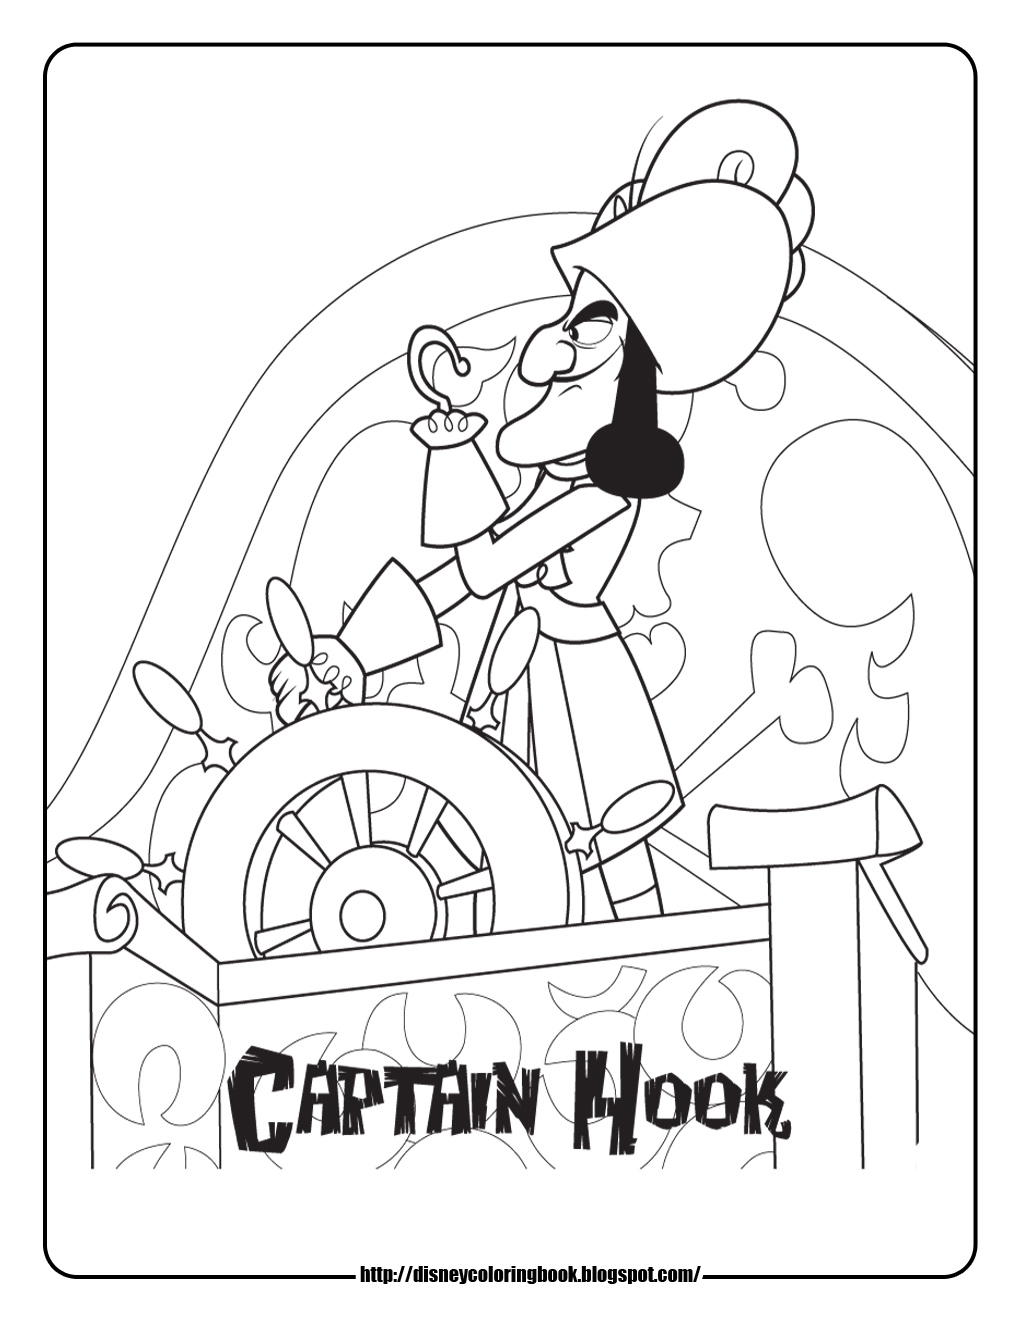 disney pirates coloring pages - photo#2